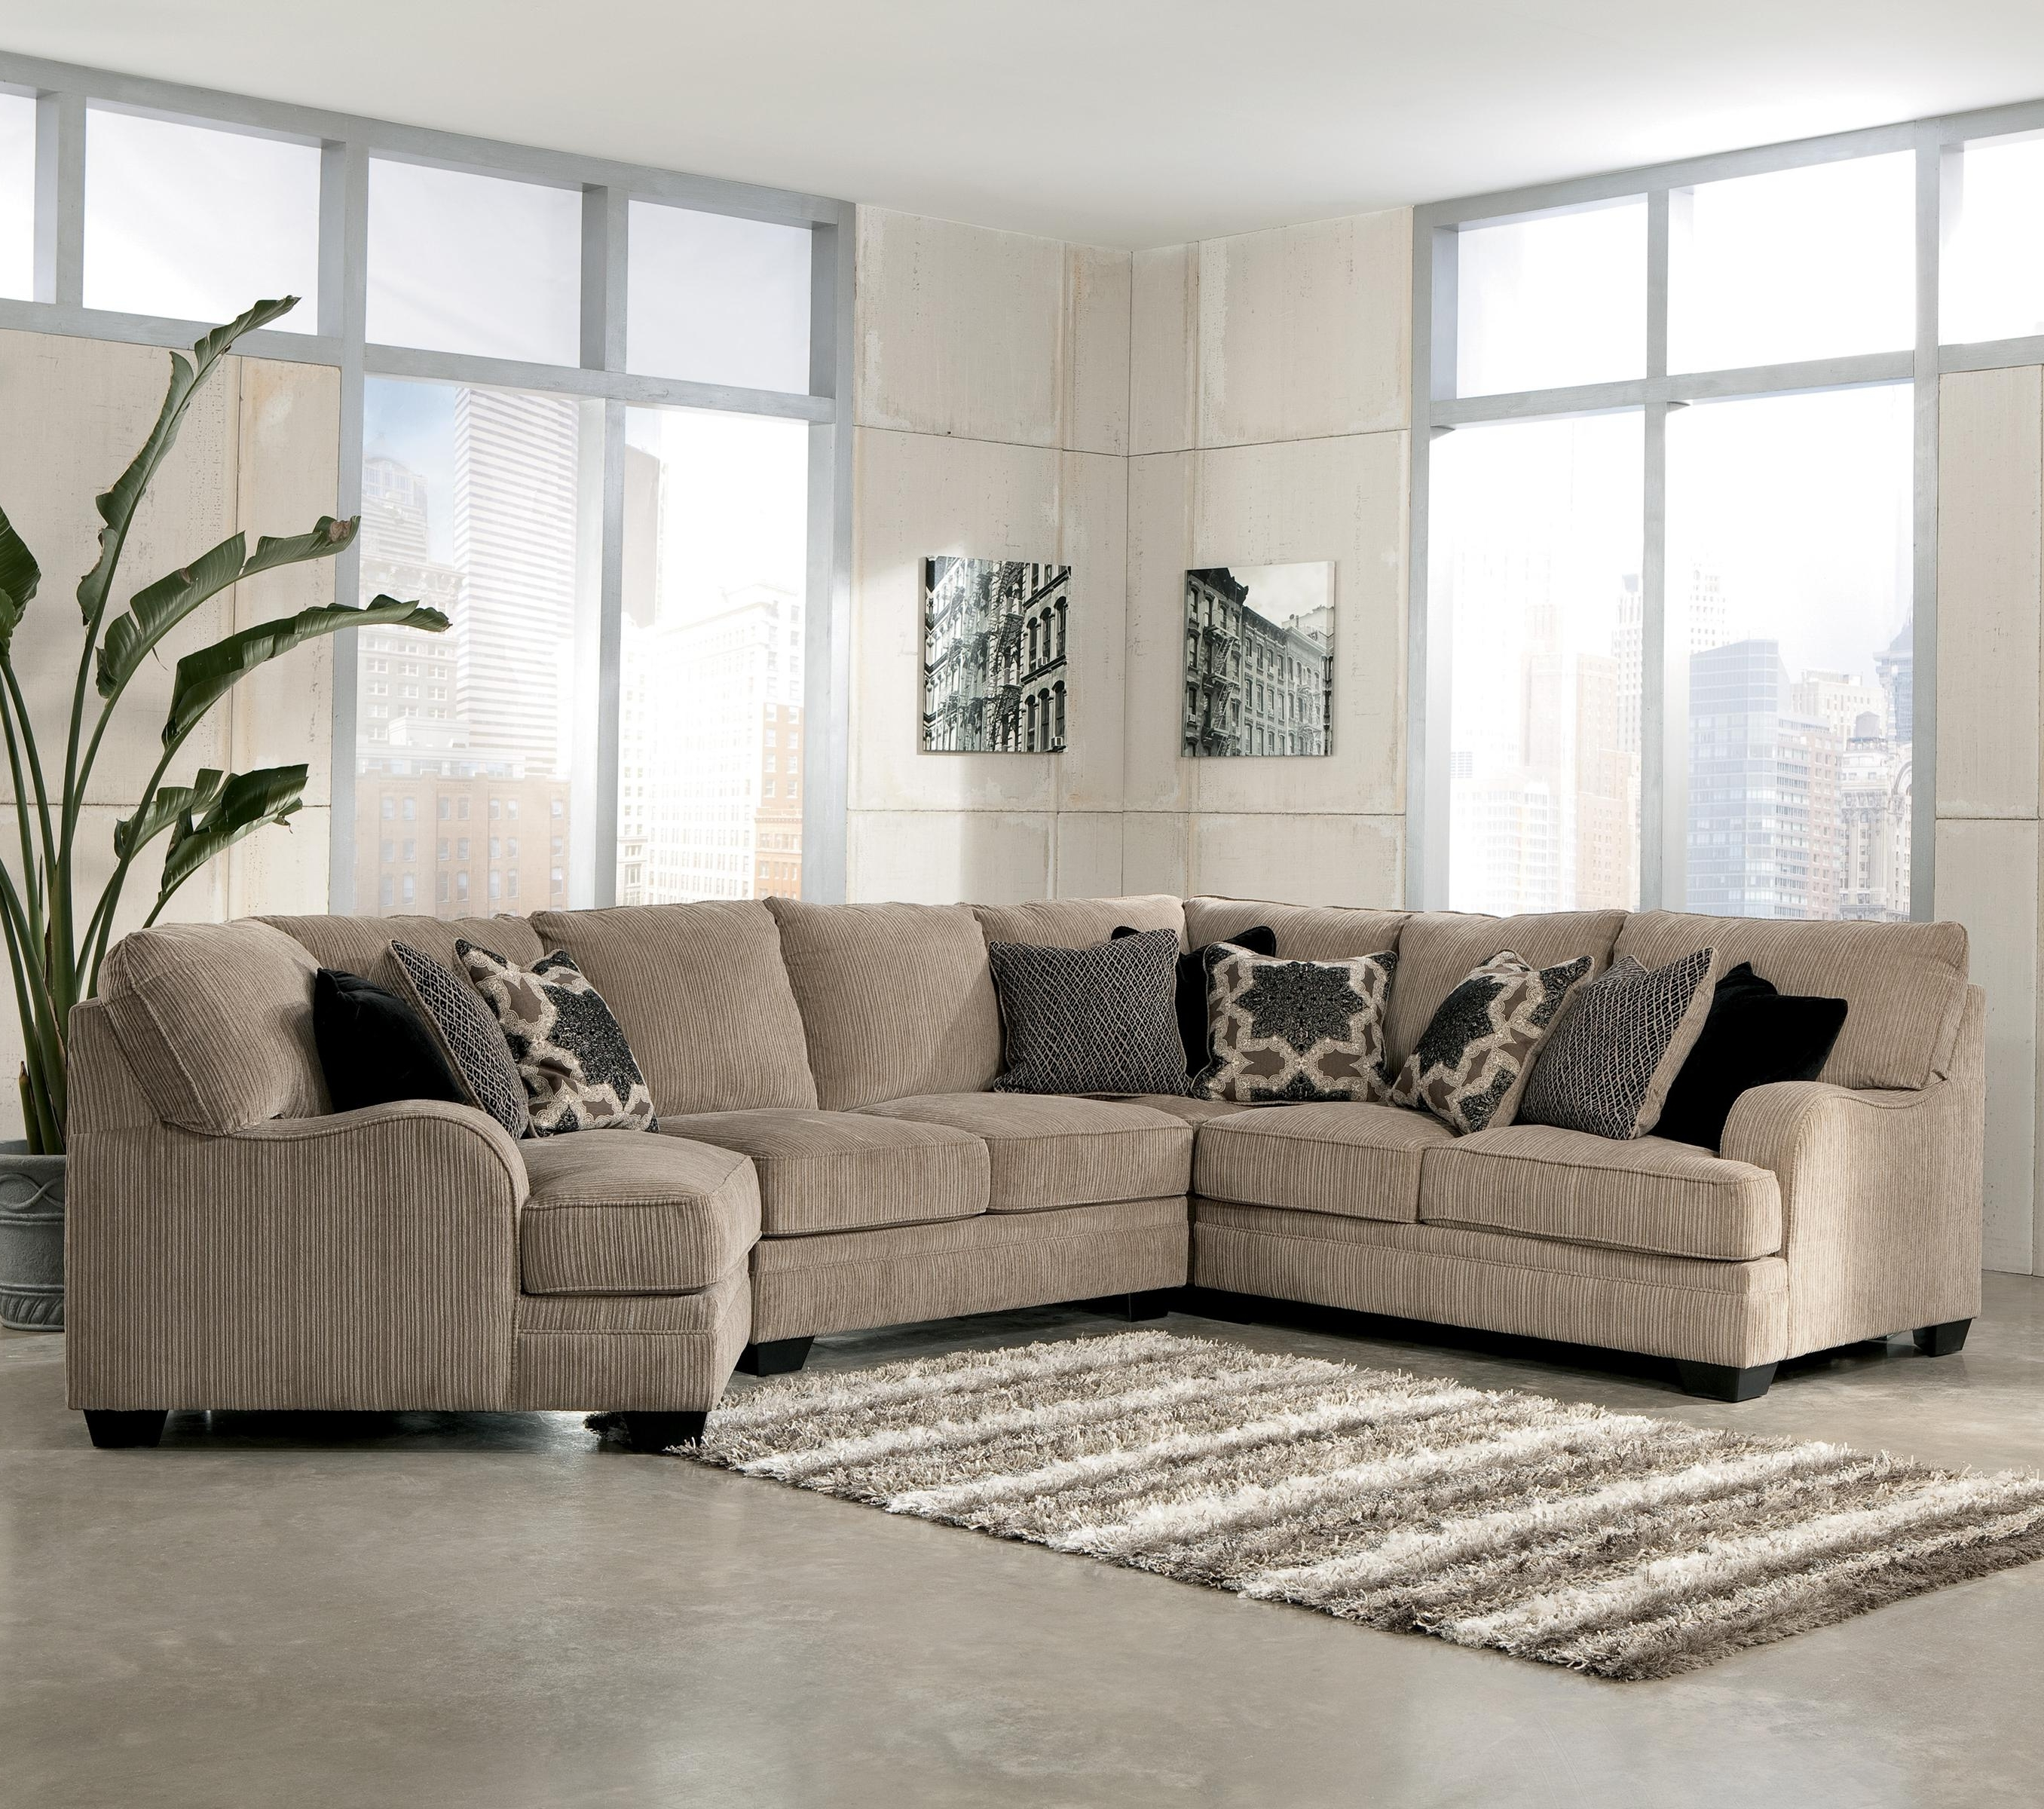 Signature Designashley Katisha – Platinum 4 Piece Sectional With Widely Used Cuddler Sectional Sofas (View 17 of 20)